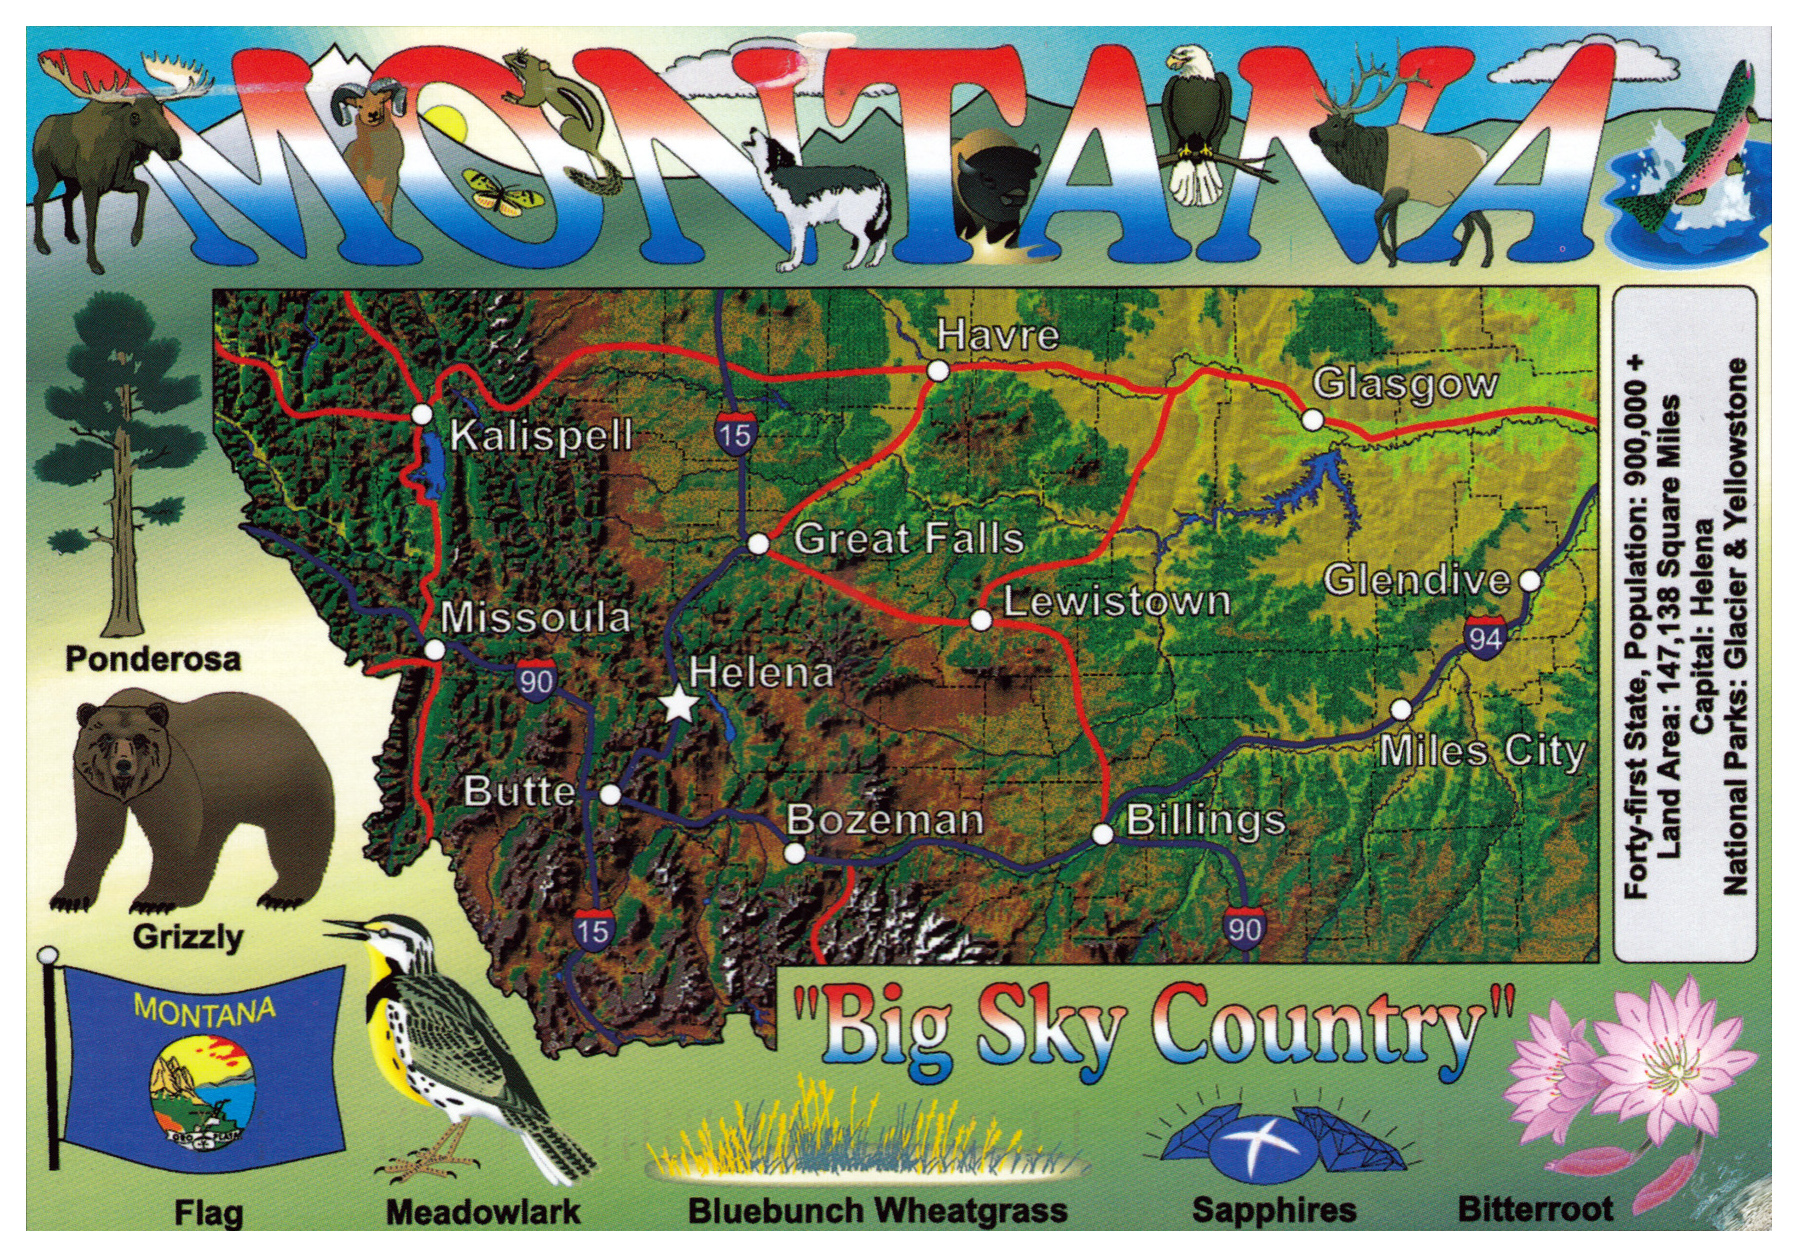 Large Tourist Map Of Montana State Montana State Large Tourist - Montana state map